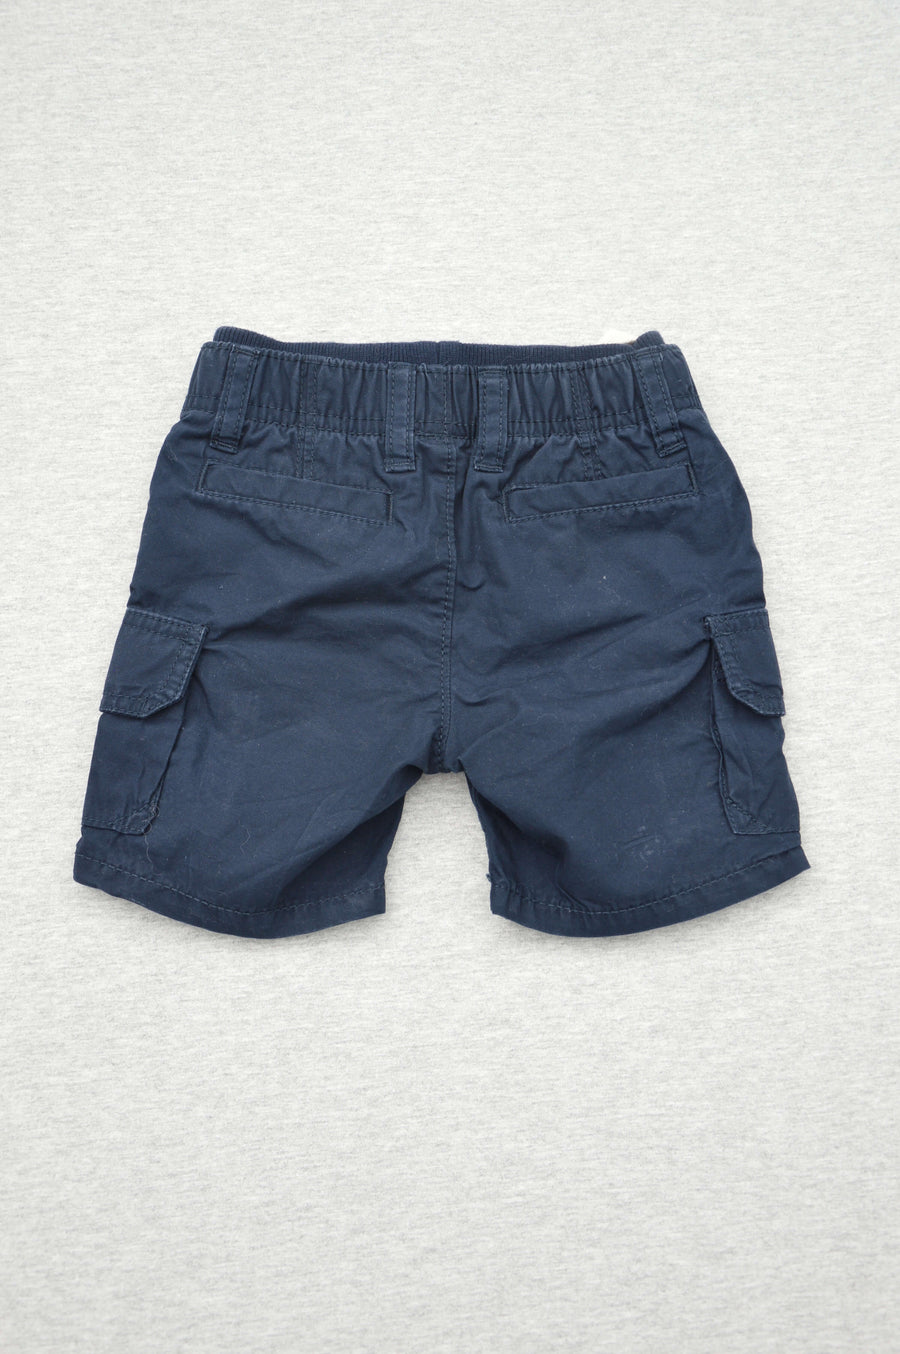 Gap - nearly new - navy cargo shorts, size 6-12m